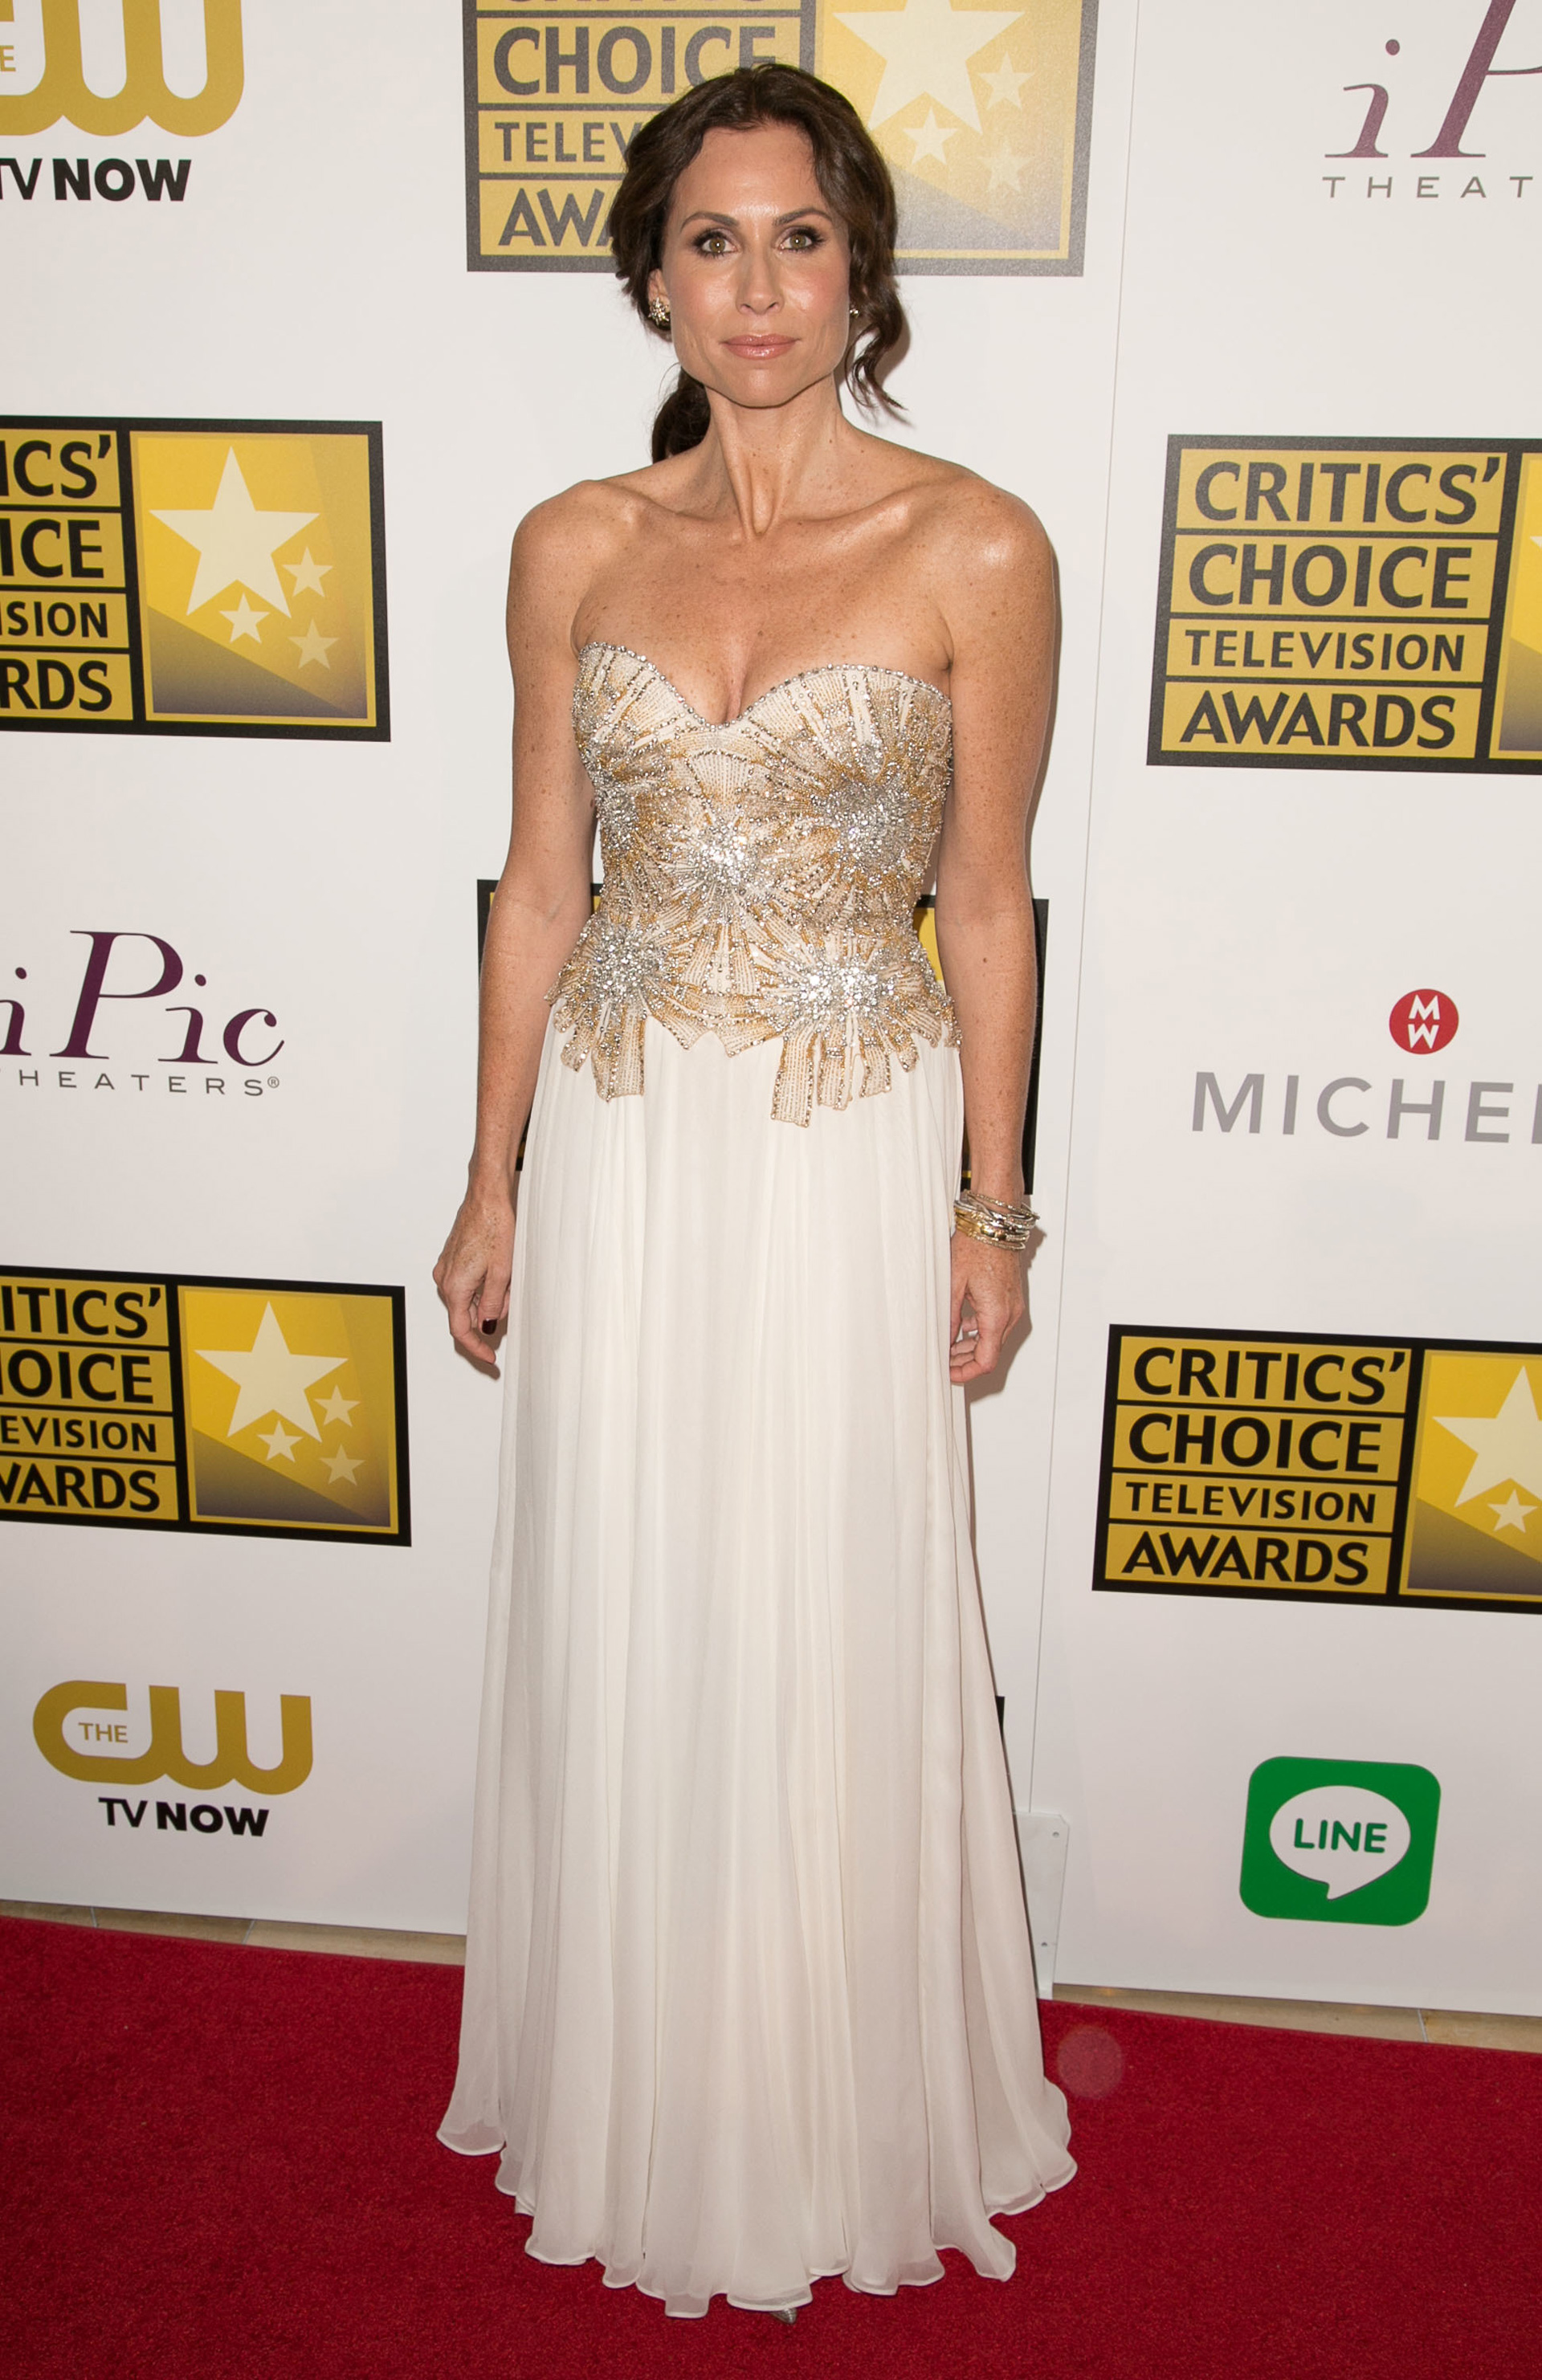 Minnie Driver at the Critic's Choice Awards